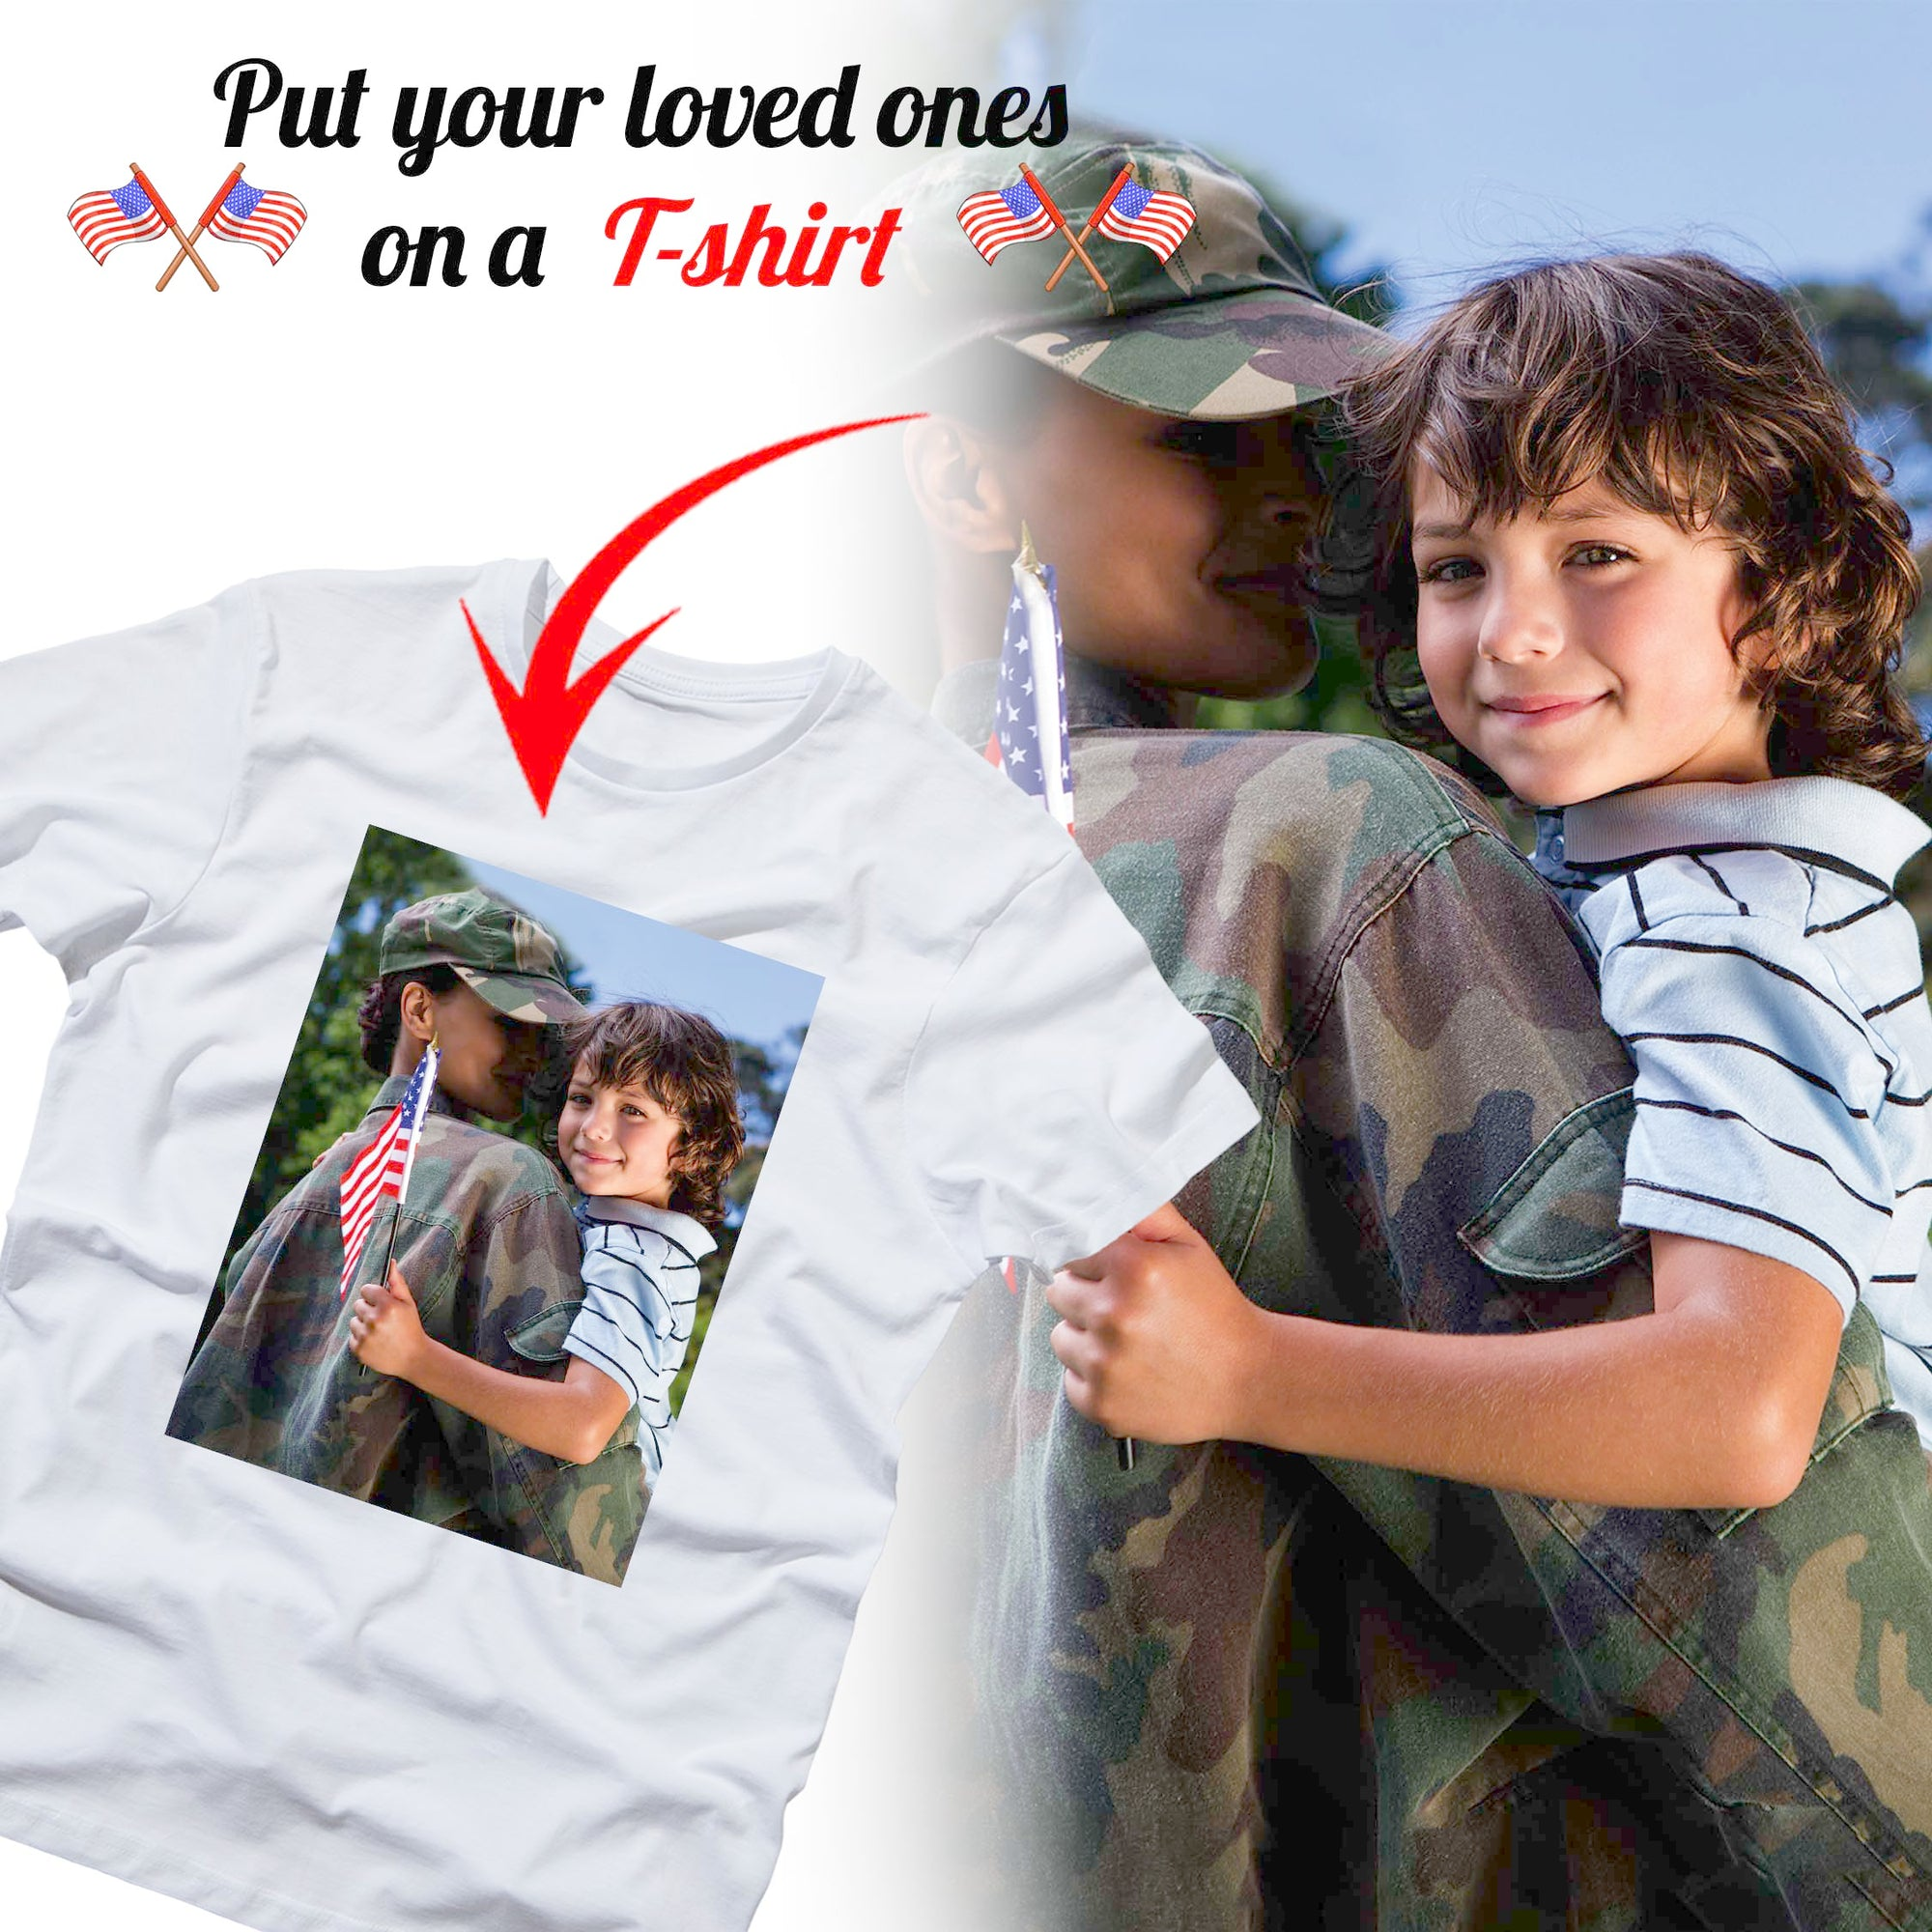 PERSONALIZED unisex t-shirt - upload your loved ones photo 32